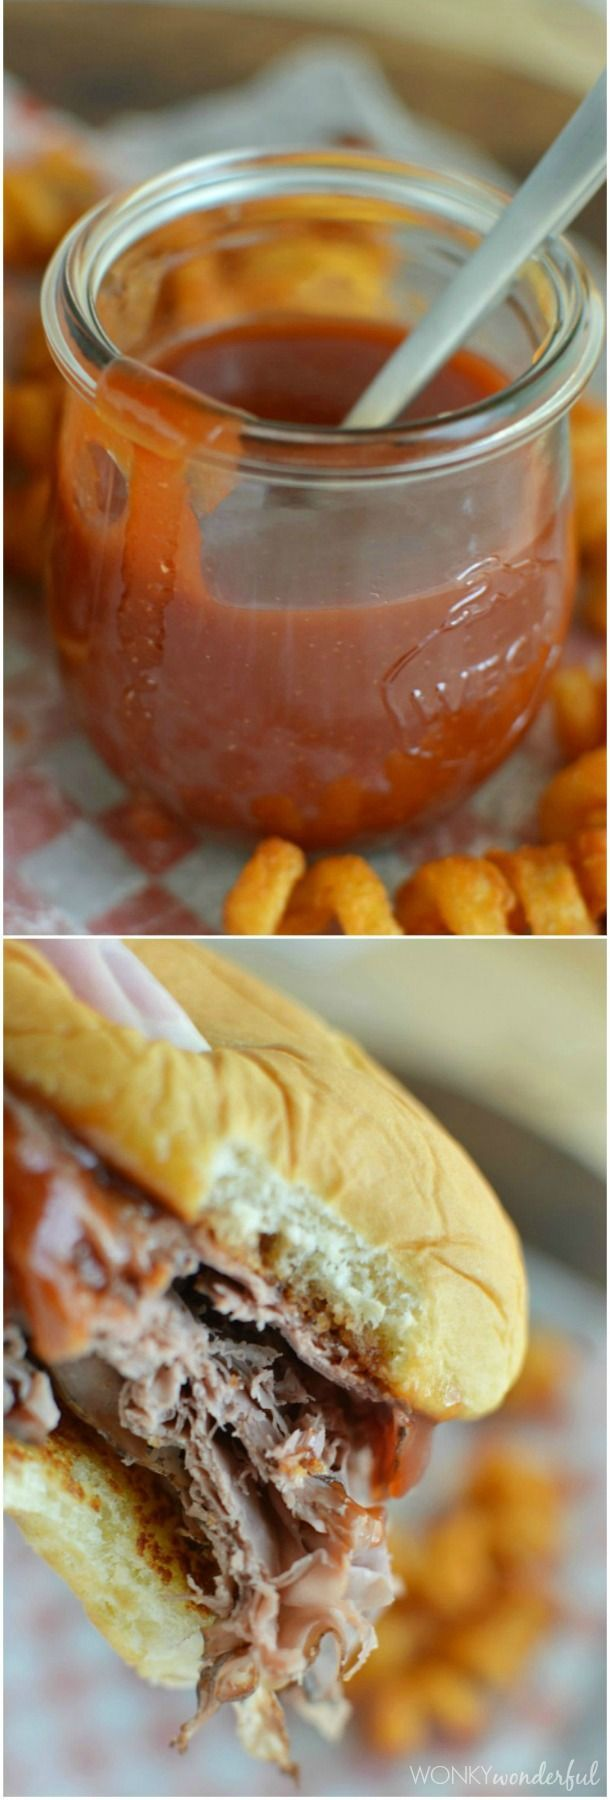 Arby's Sauce Recipe : Roast Beef Sandwich Copycat Recipe : barbecue sauce : bbq : barbeque #sauce wonkywonderful.com